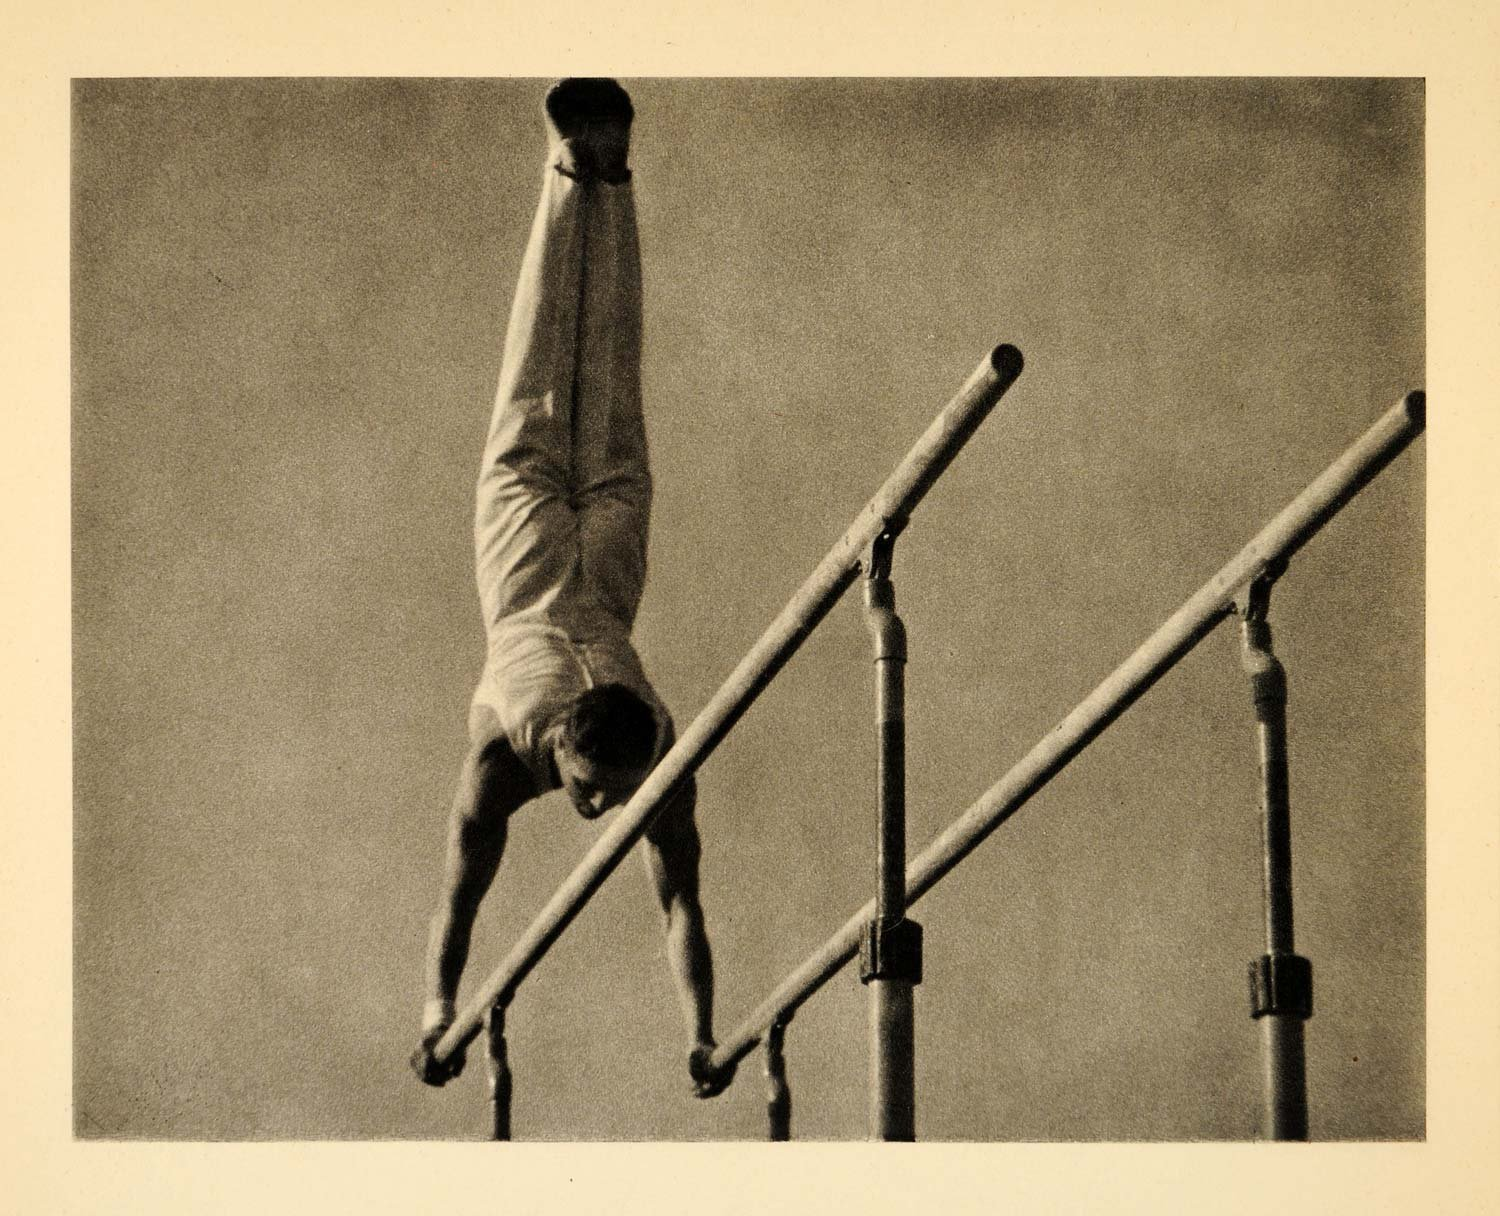 Gymnast Konrad Frey of Germany (Source: IMDB)